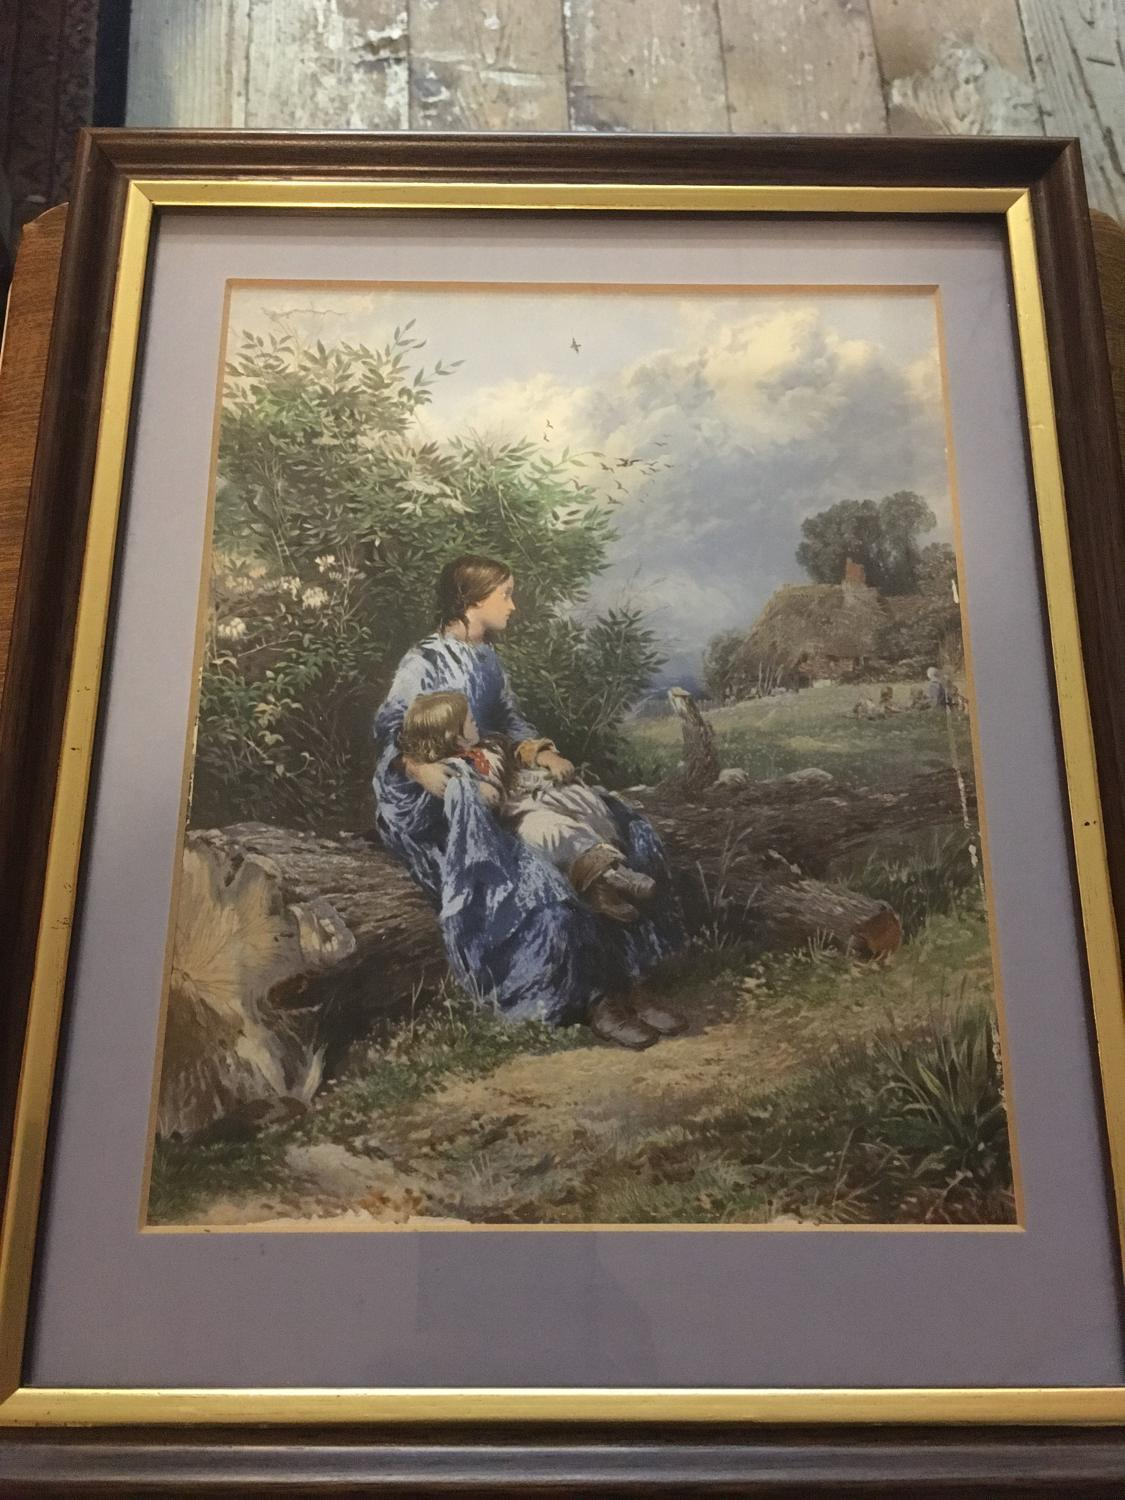 A Pair Of Framed Prints By Myles Birket Foster